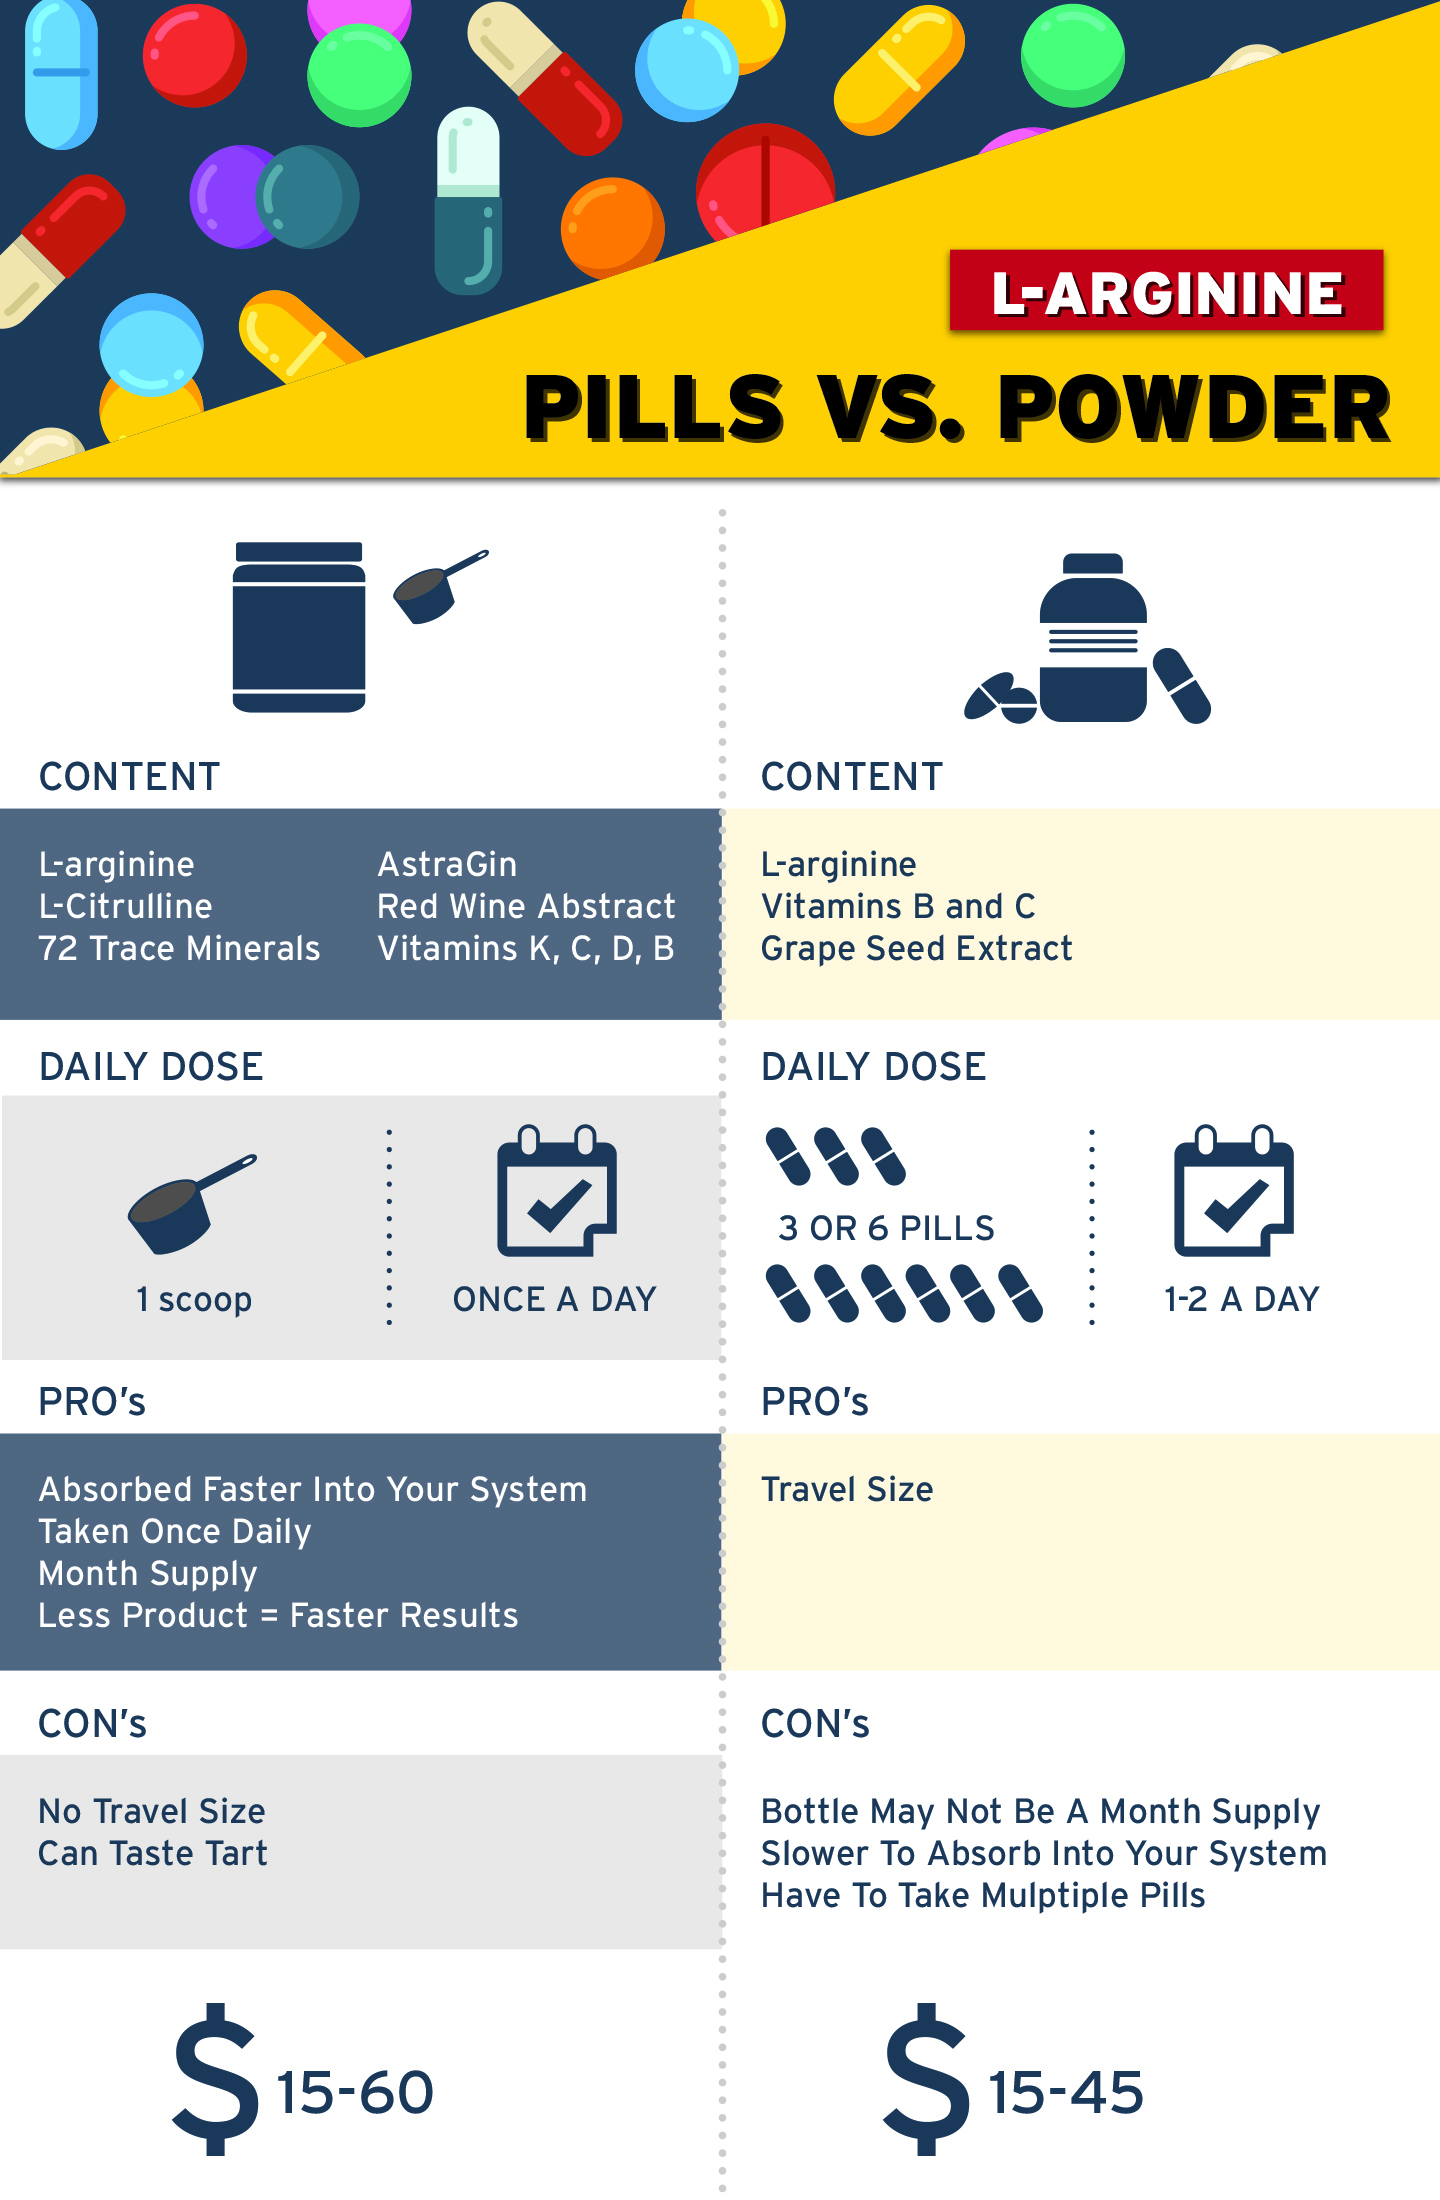 l-arginine pills vs. powder